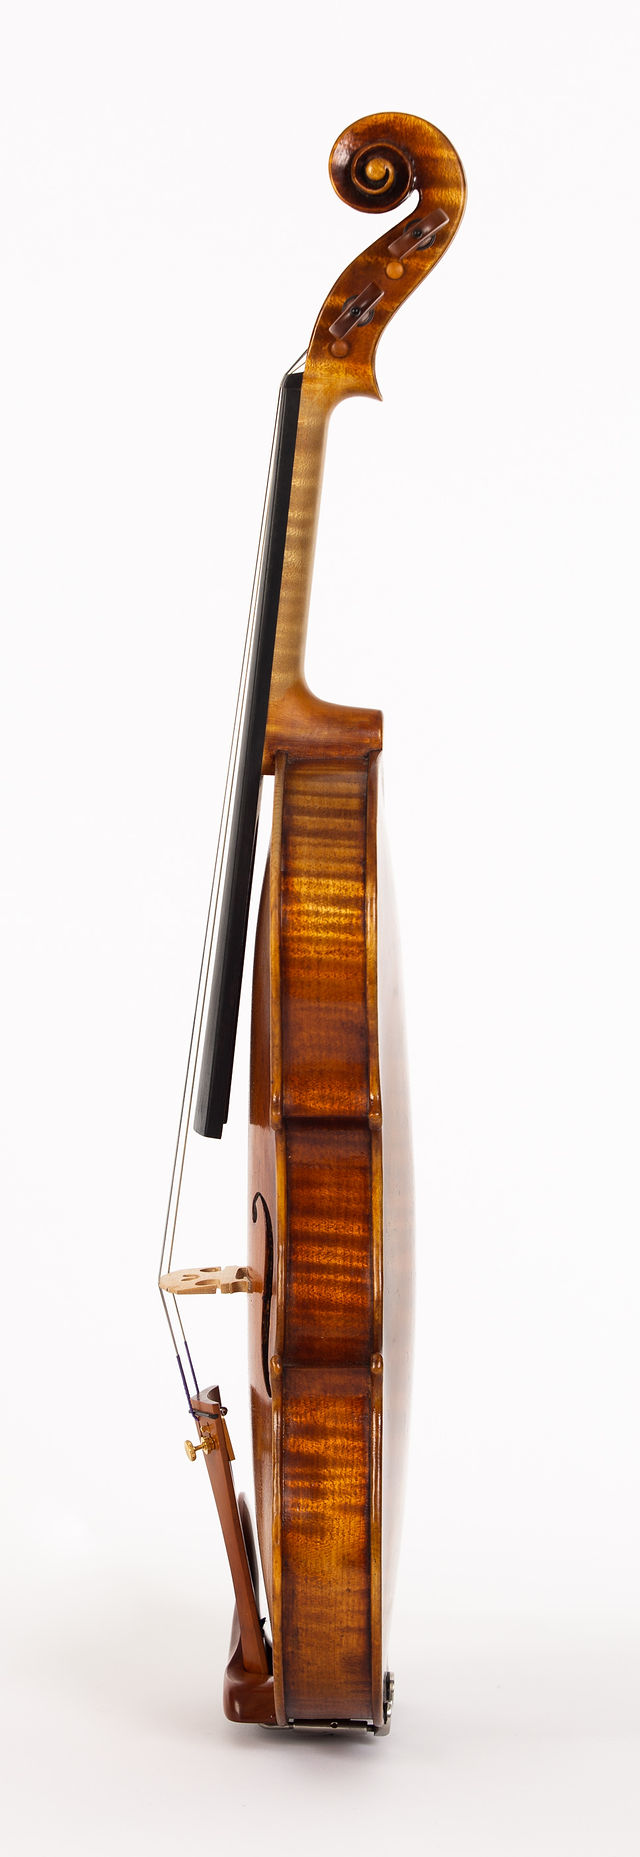 Starkie Strad model violin 2018 side.jpg